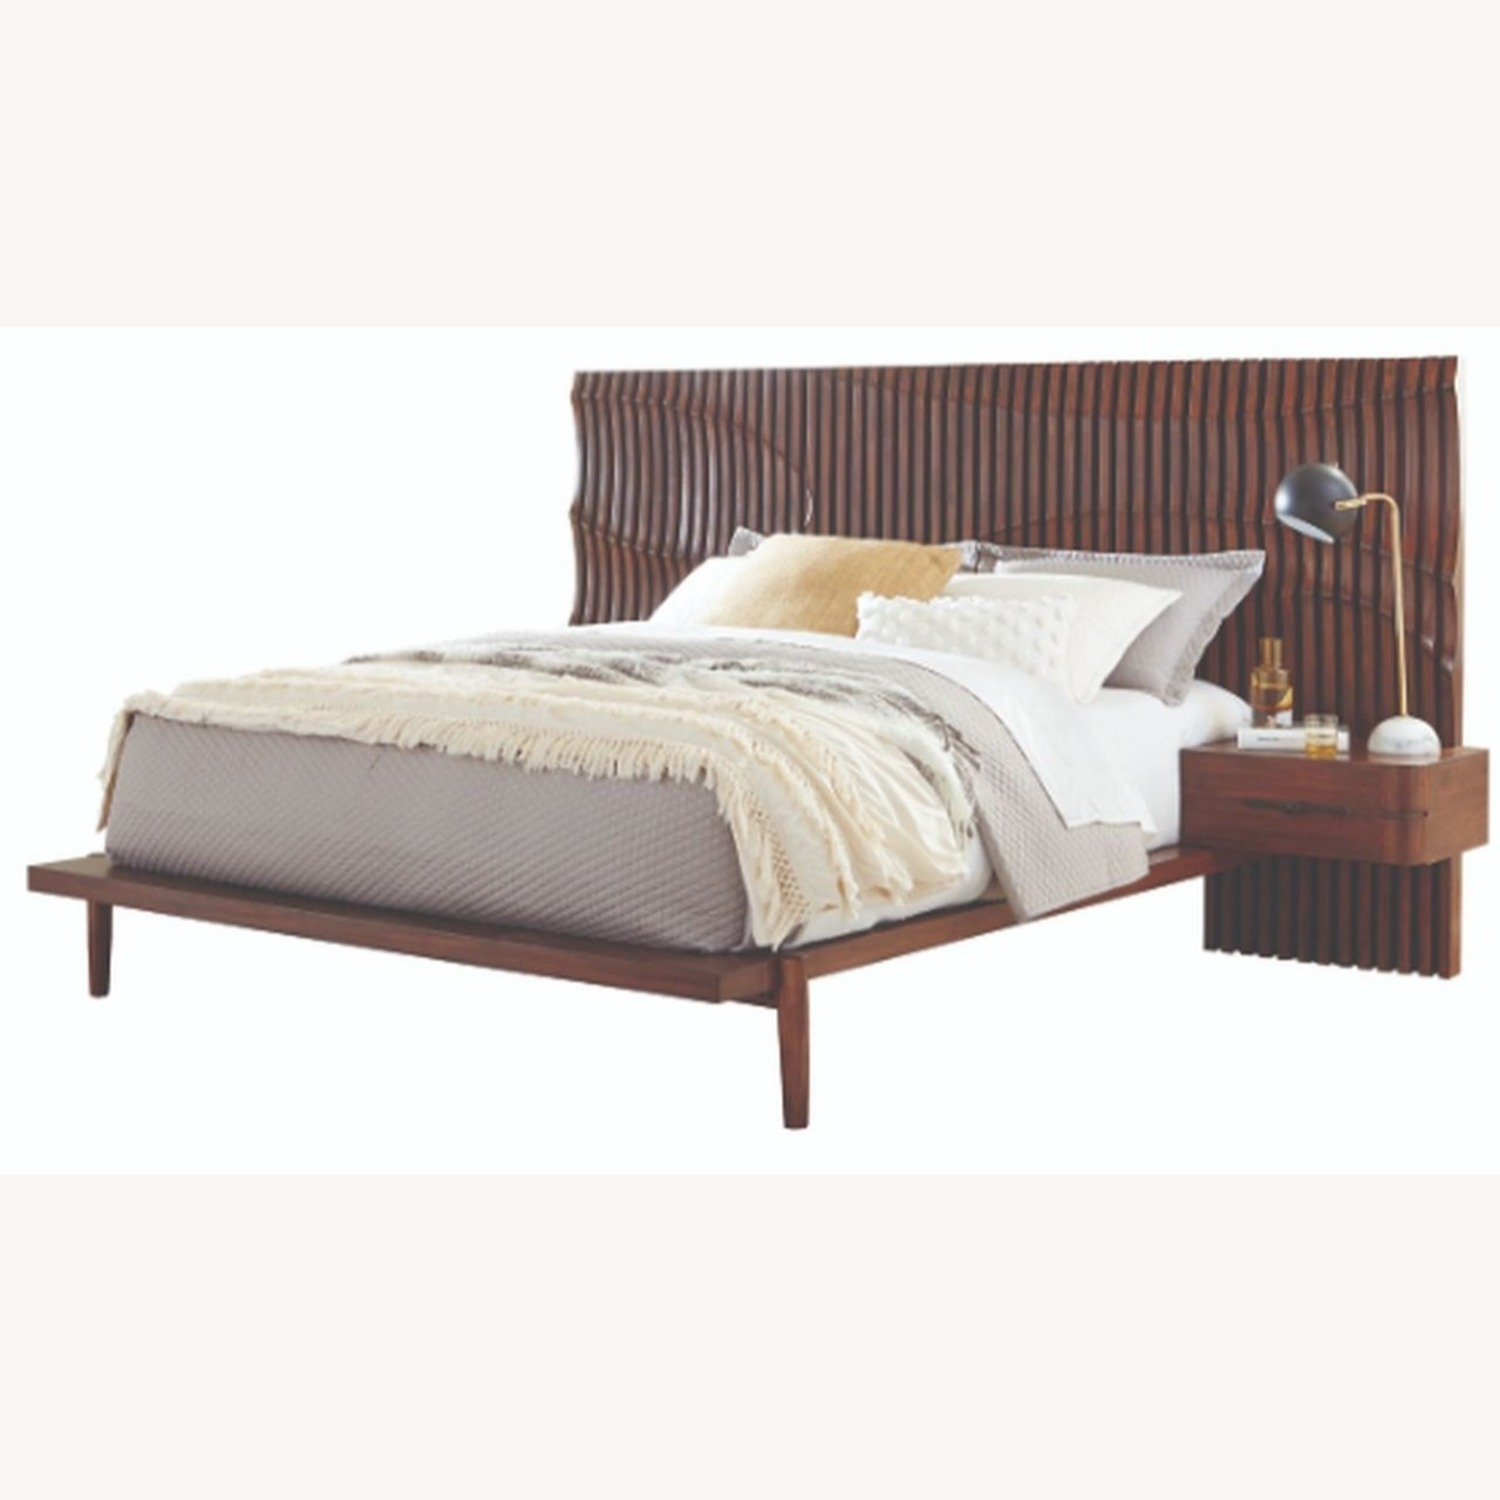 Contemporary King Bed In Dessert Teak Finish - image-1